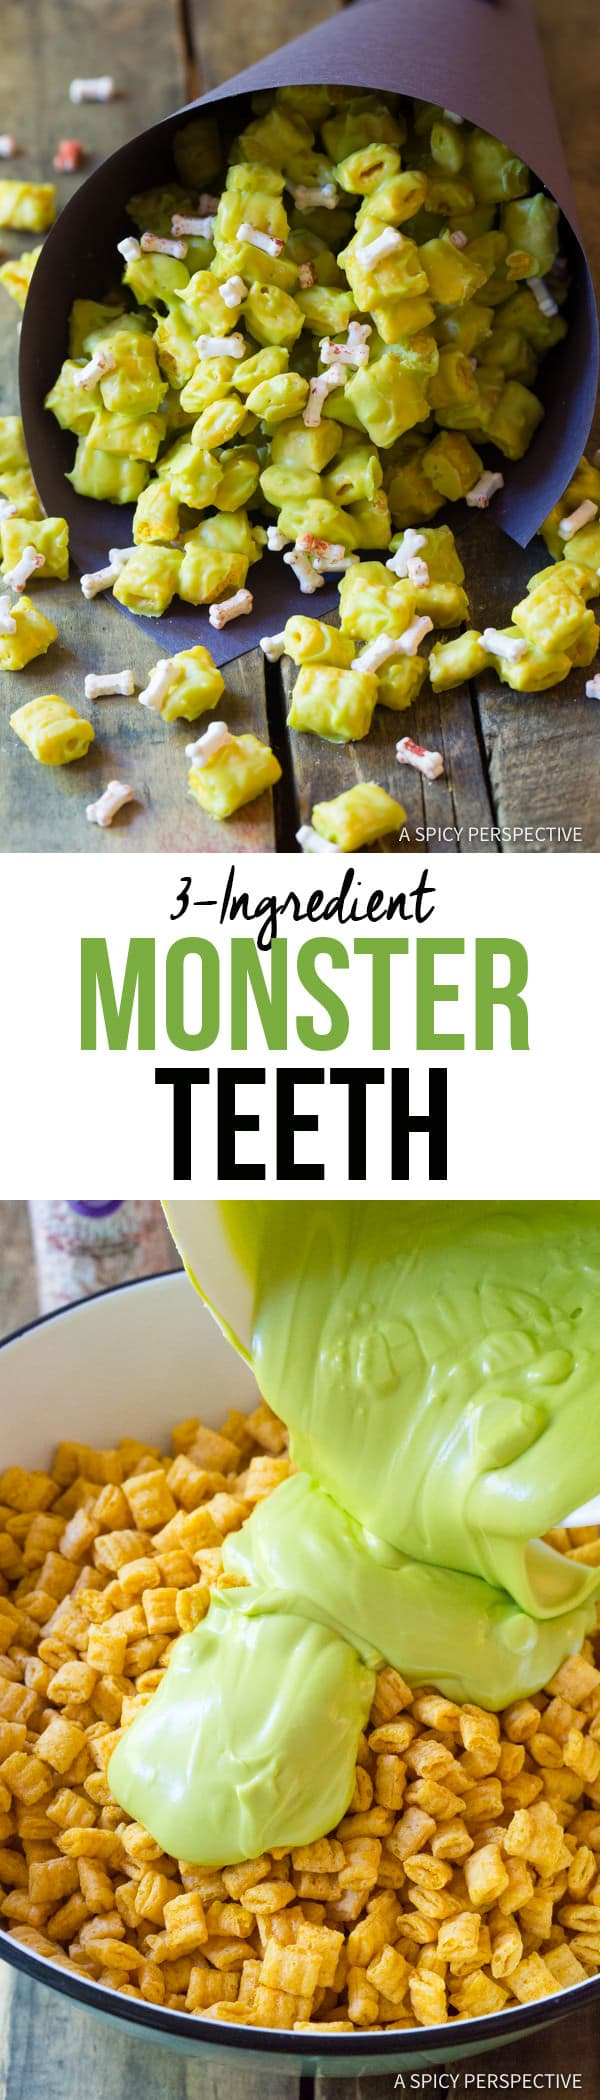 Spooky 3-Ingredient Monster Teeth Recipe for Halloween! | ASpicyPerspective.com